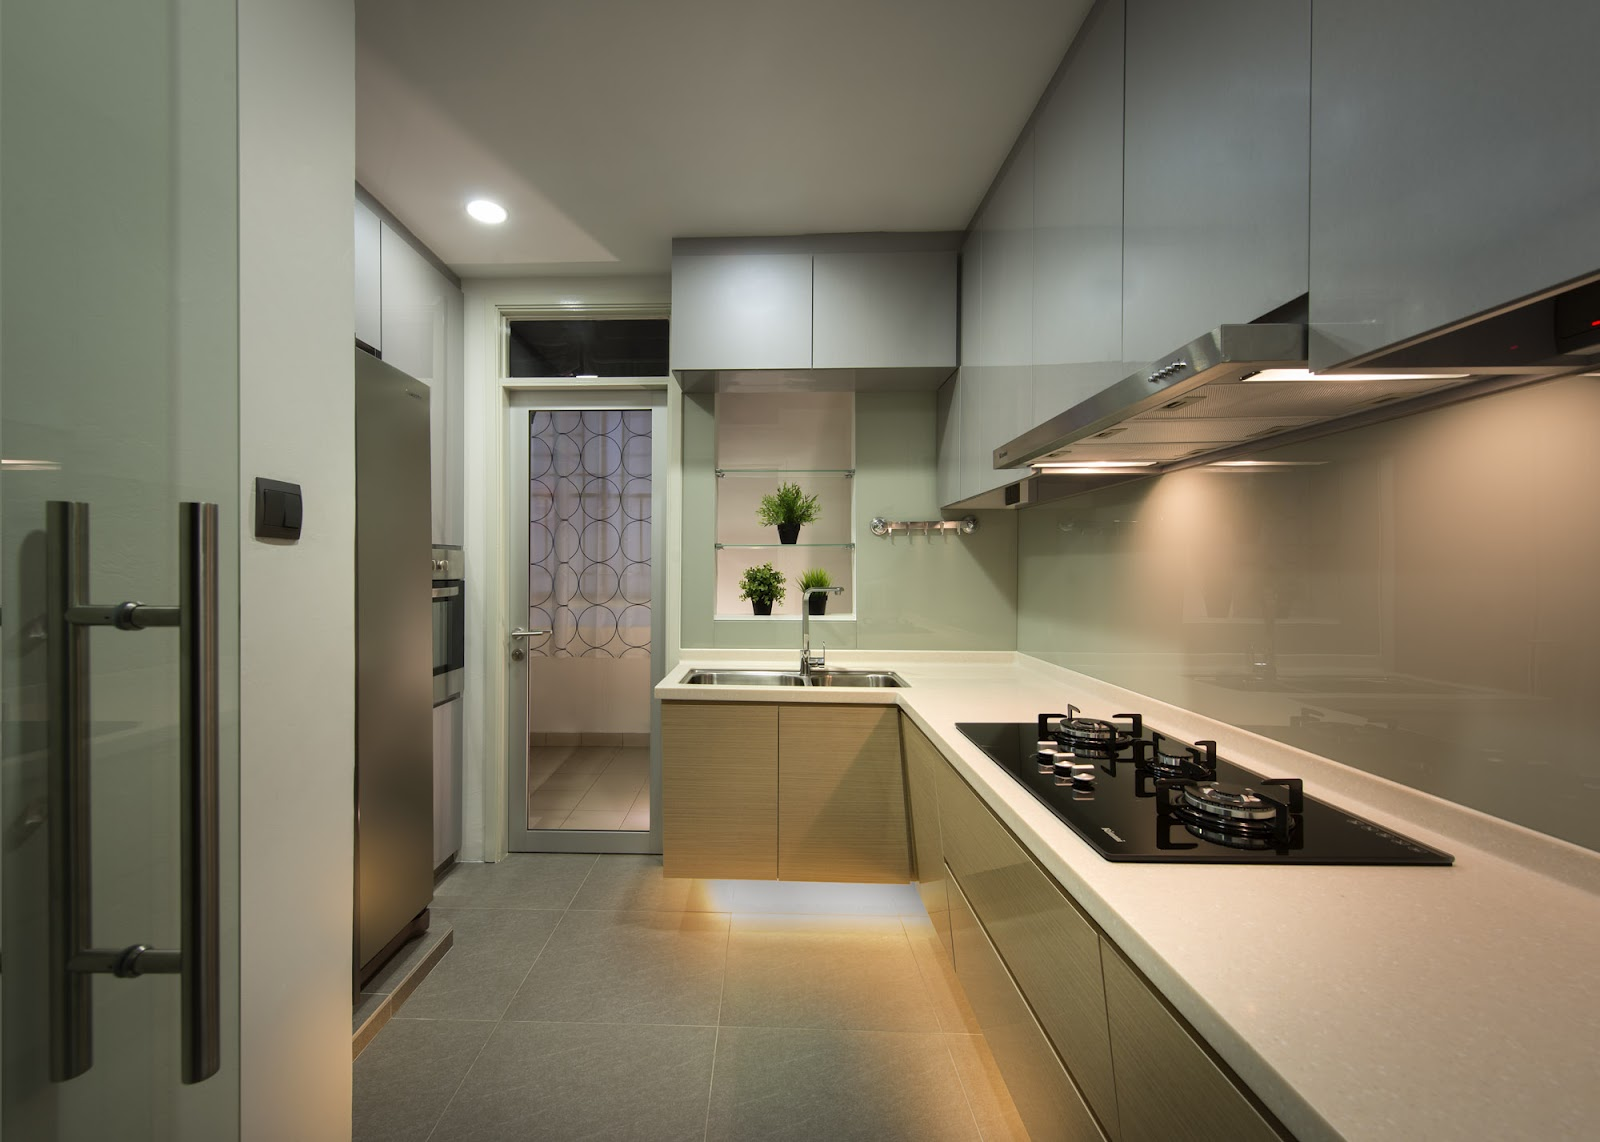 4 Room Hdb Interior Design Interior Design